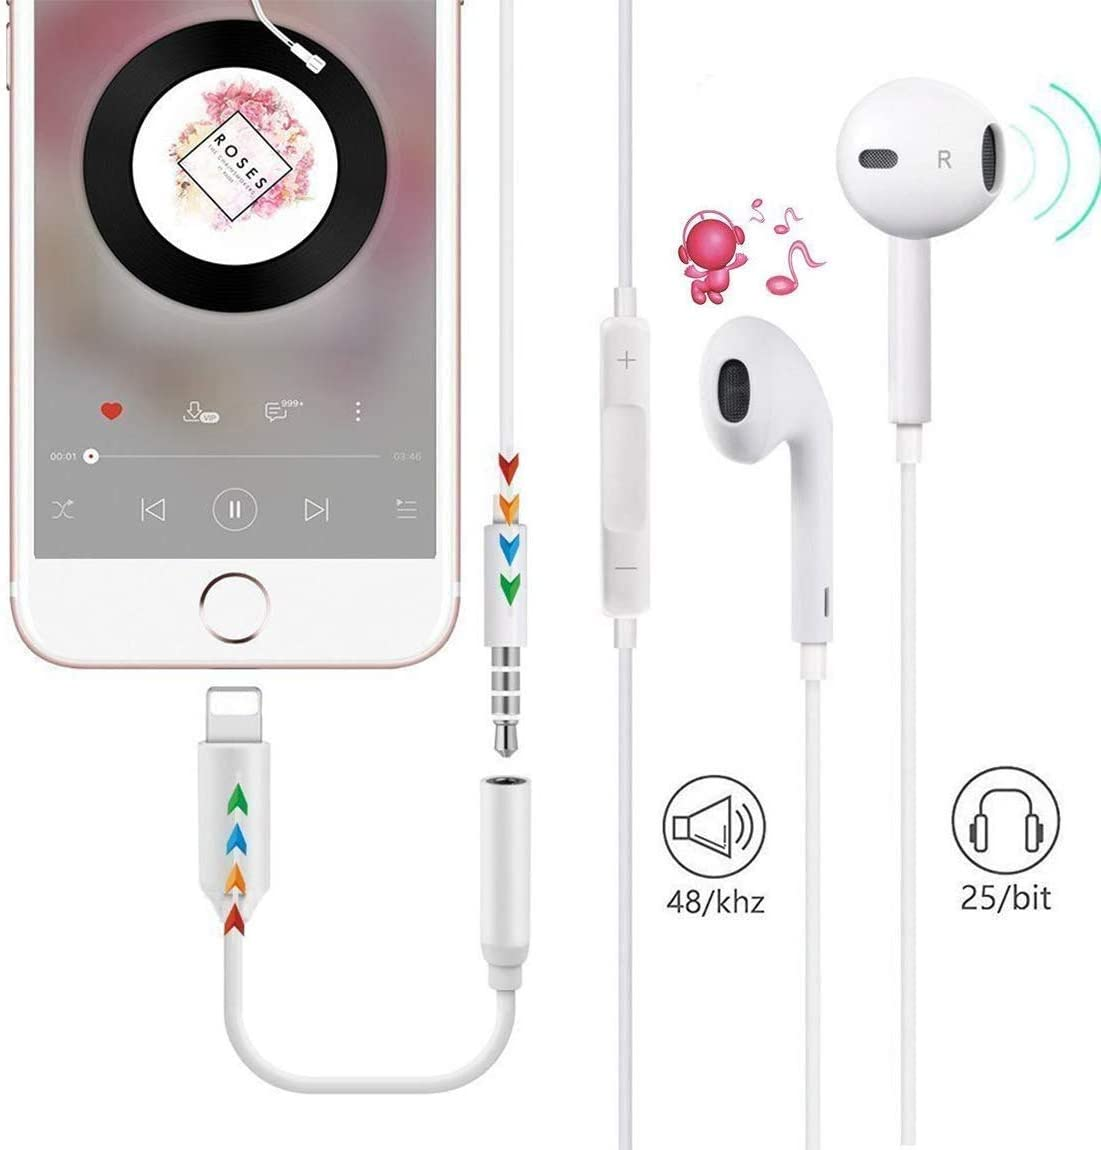 Lighting to 3.5mm Headphones Earbuds Jack Adapter Aux Cable Earphones Headphone Converter Accessories Support iOS 12 Compatible with iPhone 11 Pro Max//Xs MAX//XR//X//8 Plus//7 Plus//ipad//iPod Upgraded